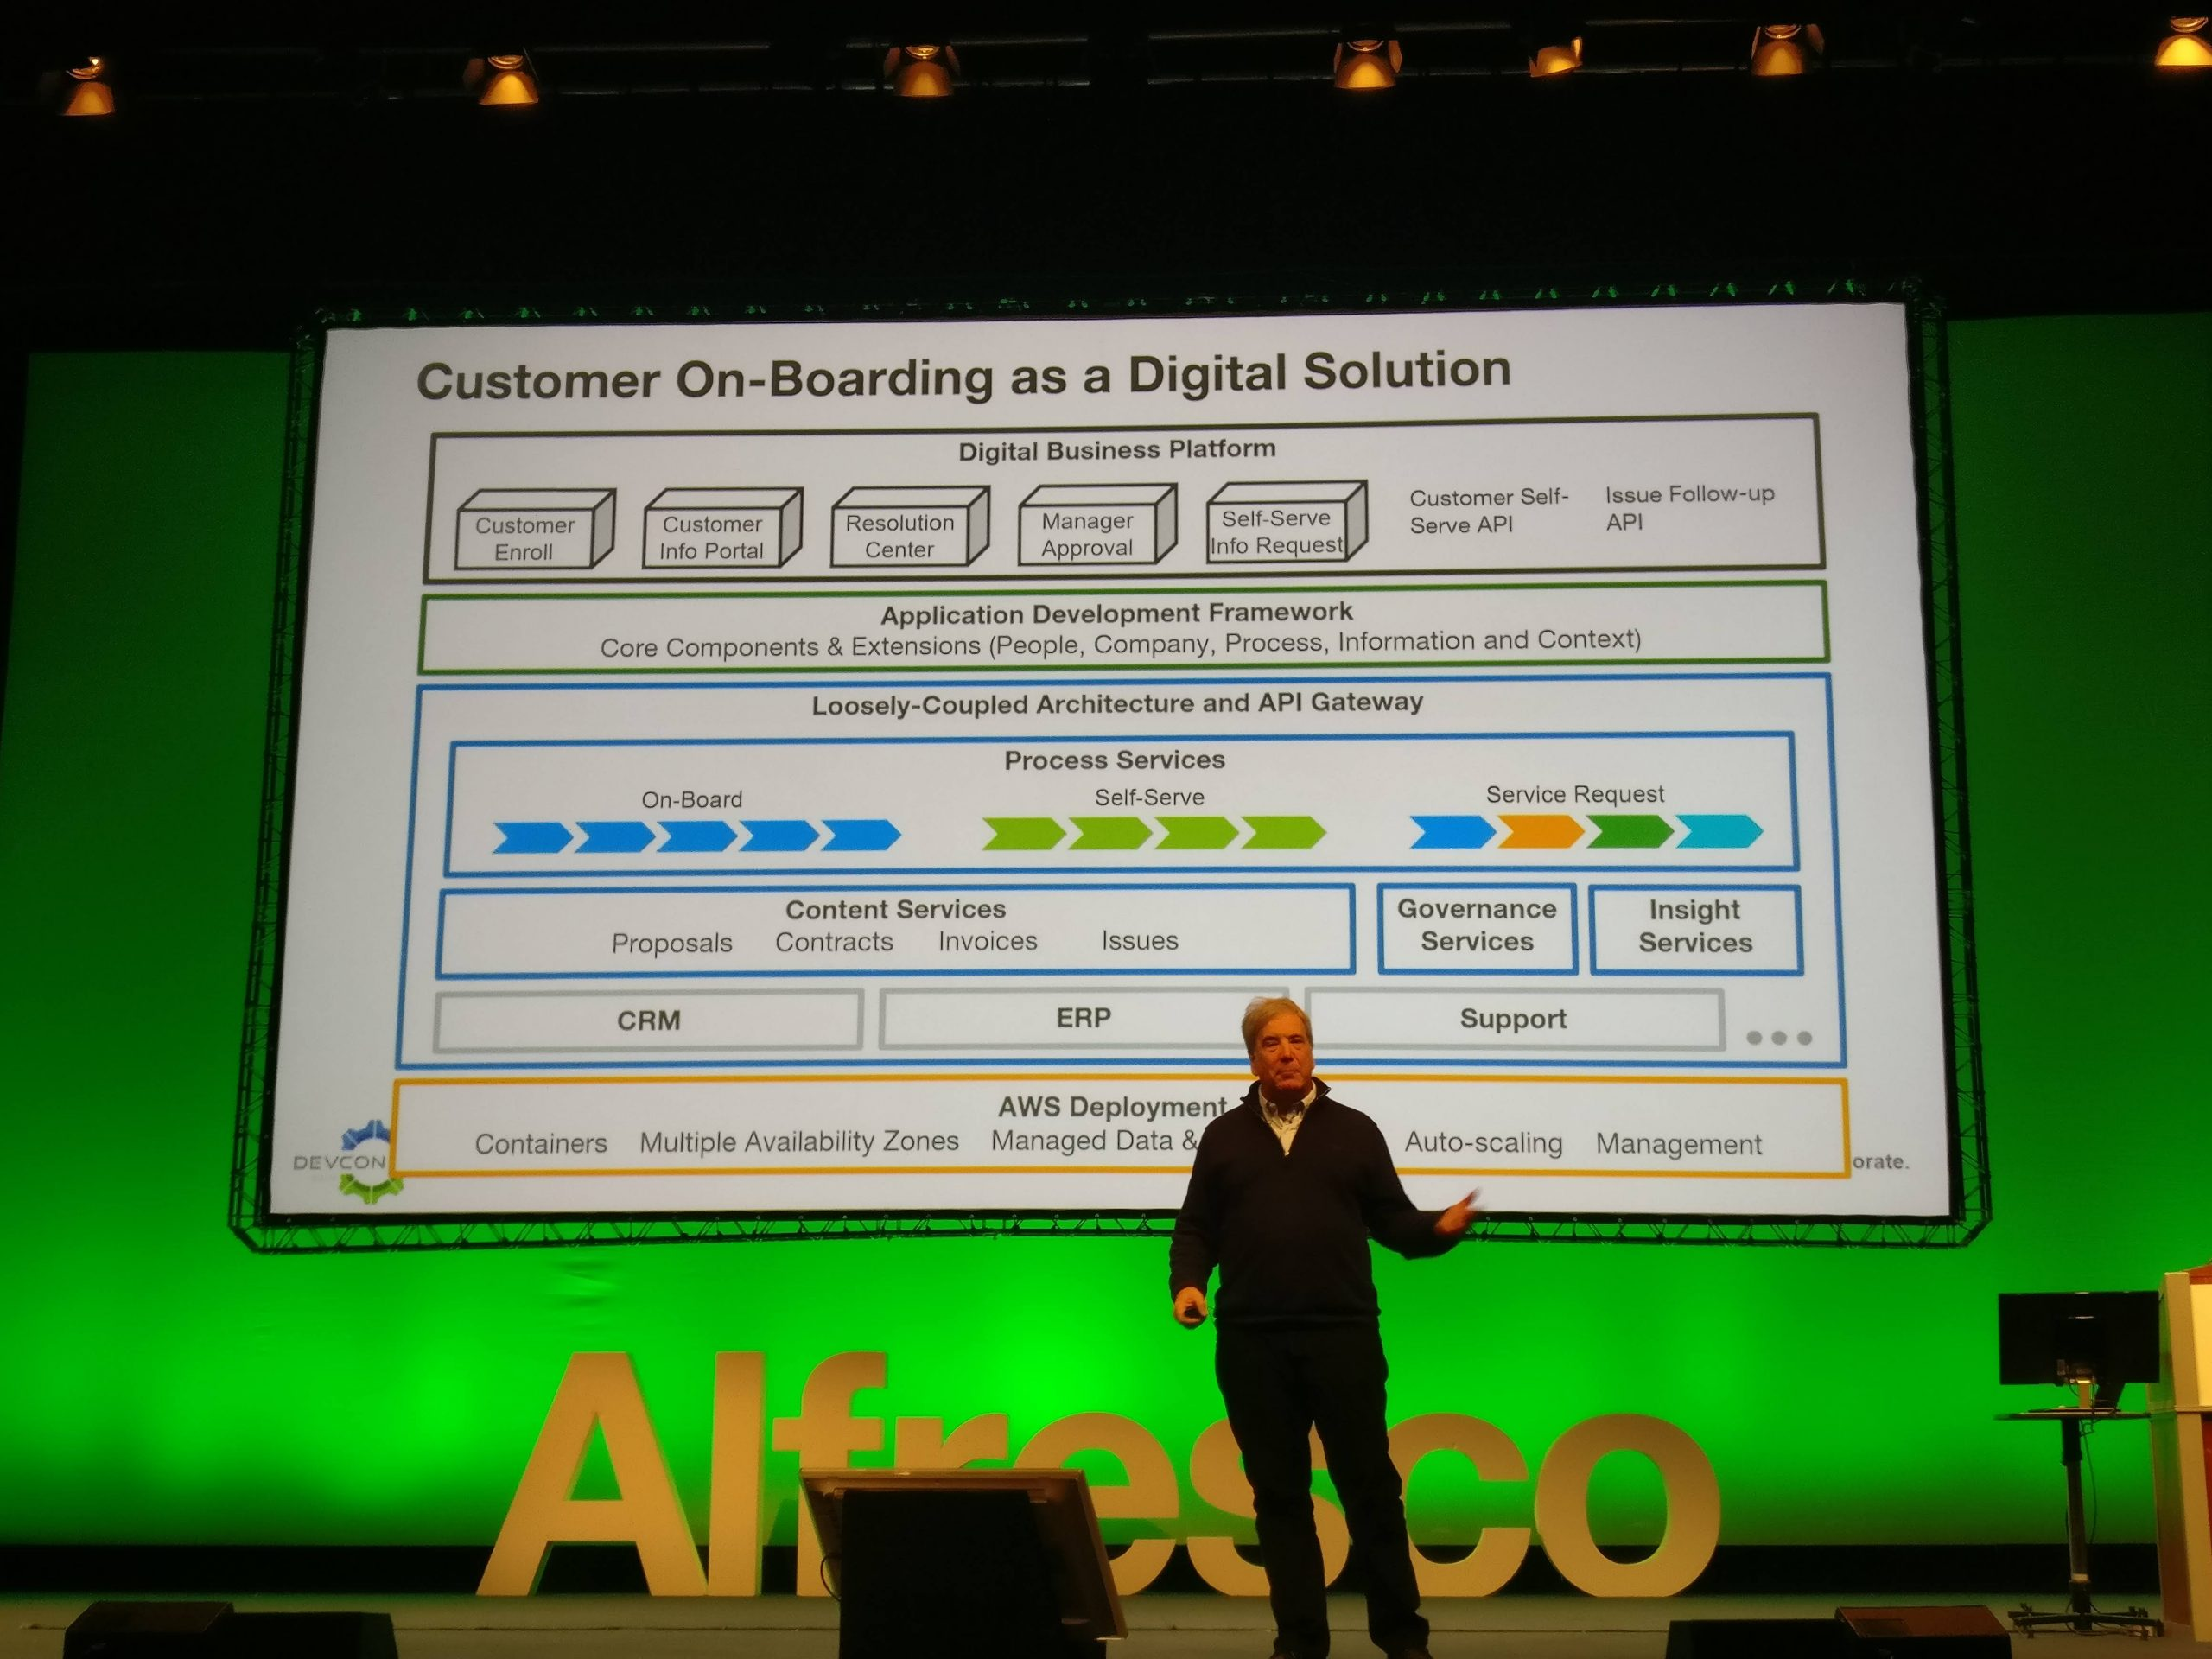 Customer On-Boarding as a Digital Solution